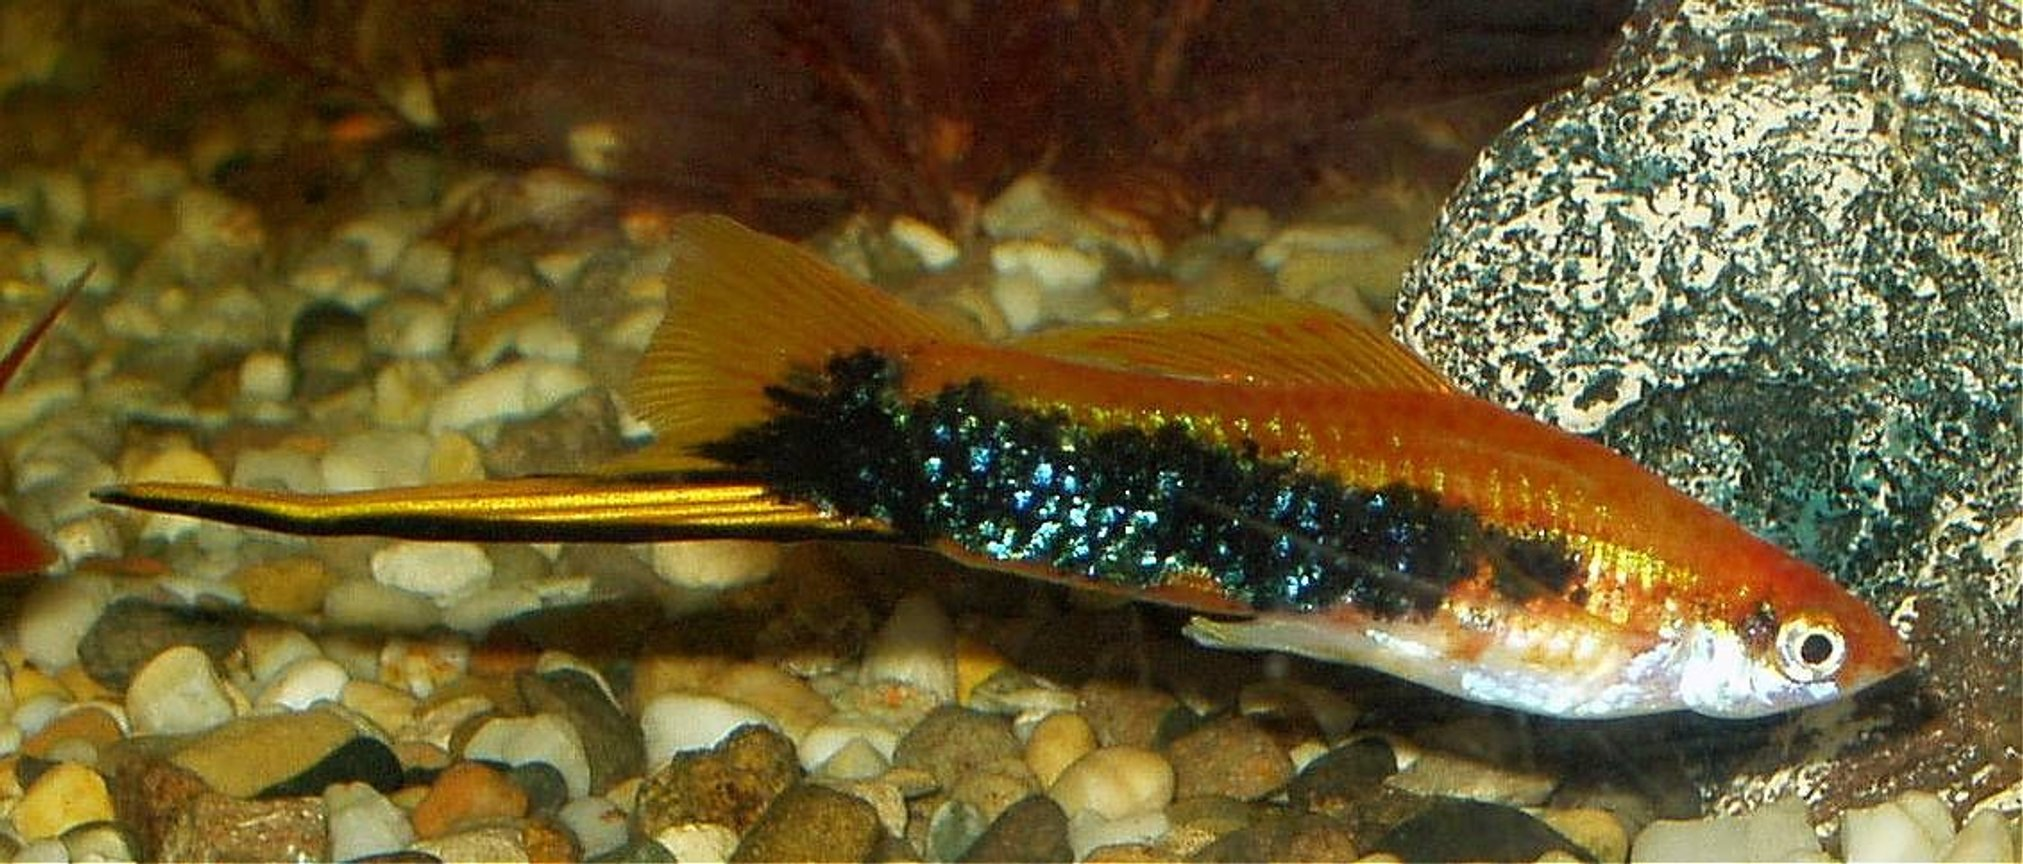 freshwater fish - xiphophorus helleri - swordtail stocking in 240 gallons tank - our male swordtail approx 4 and a half inches